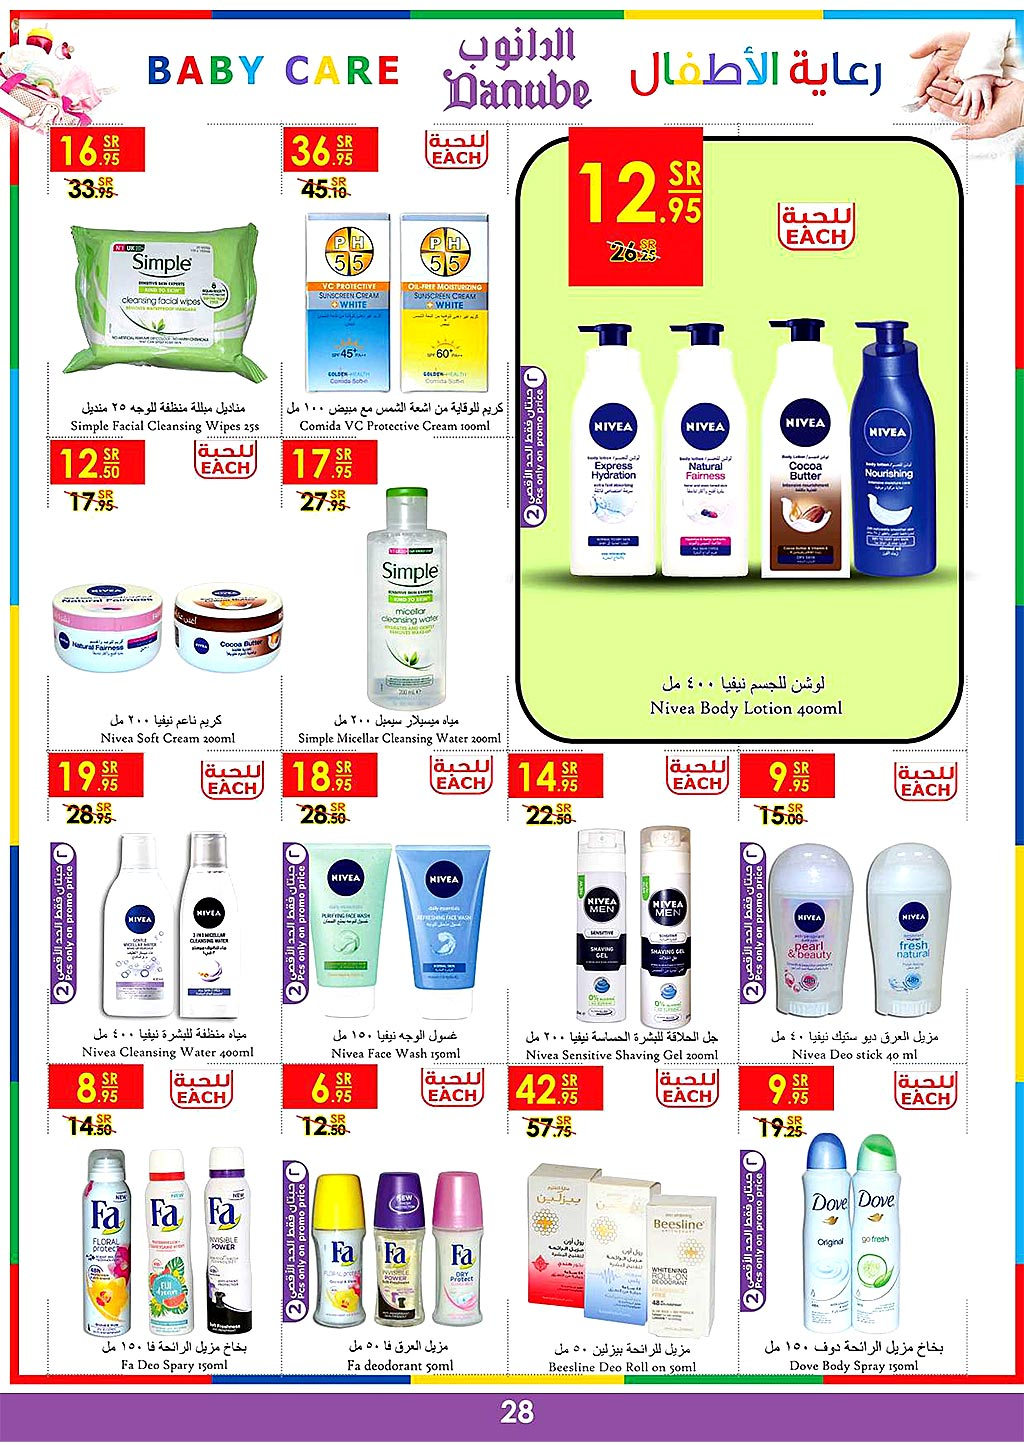 danube offers from 24july to 31july 2019 page number 27 عروض الدانوب من 24 يوليو حتى 31 يوليو 2019 صفحة رقم 27